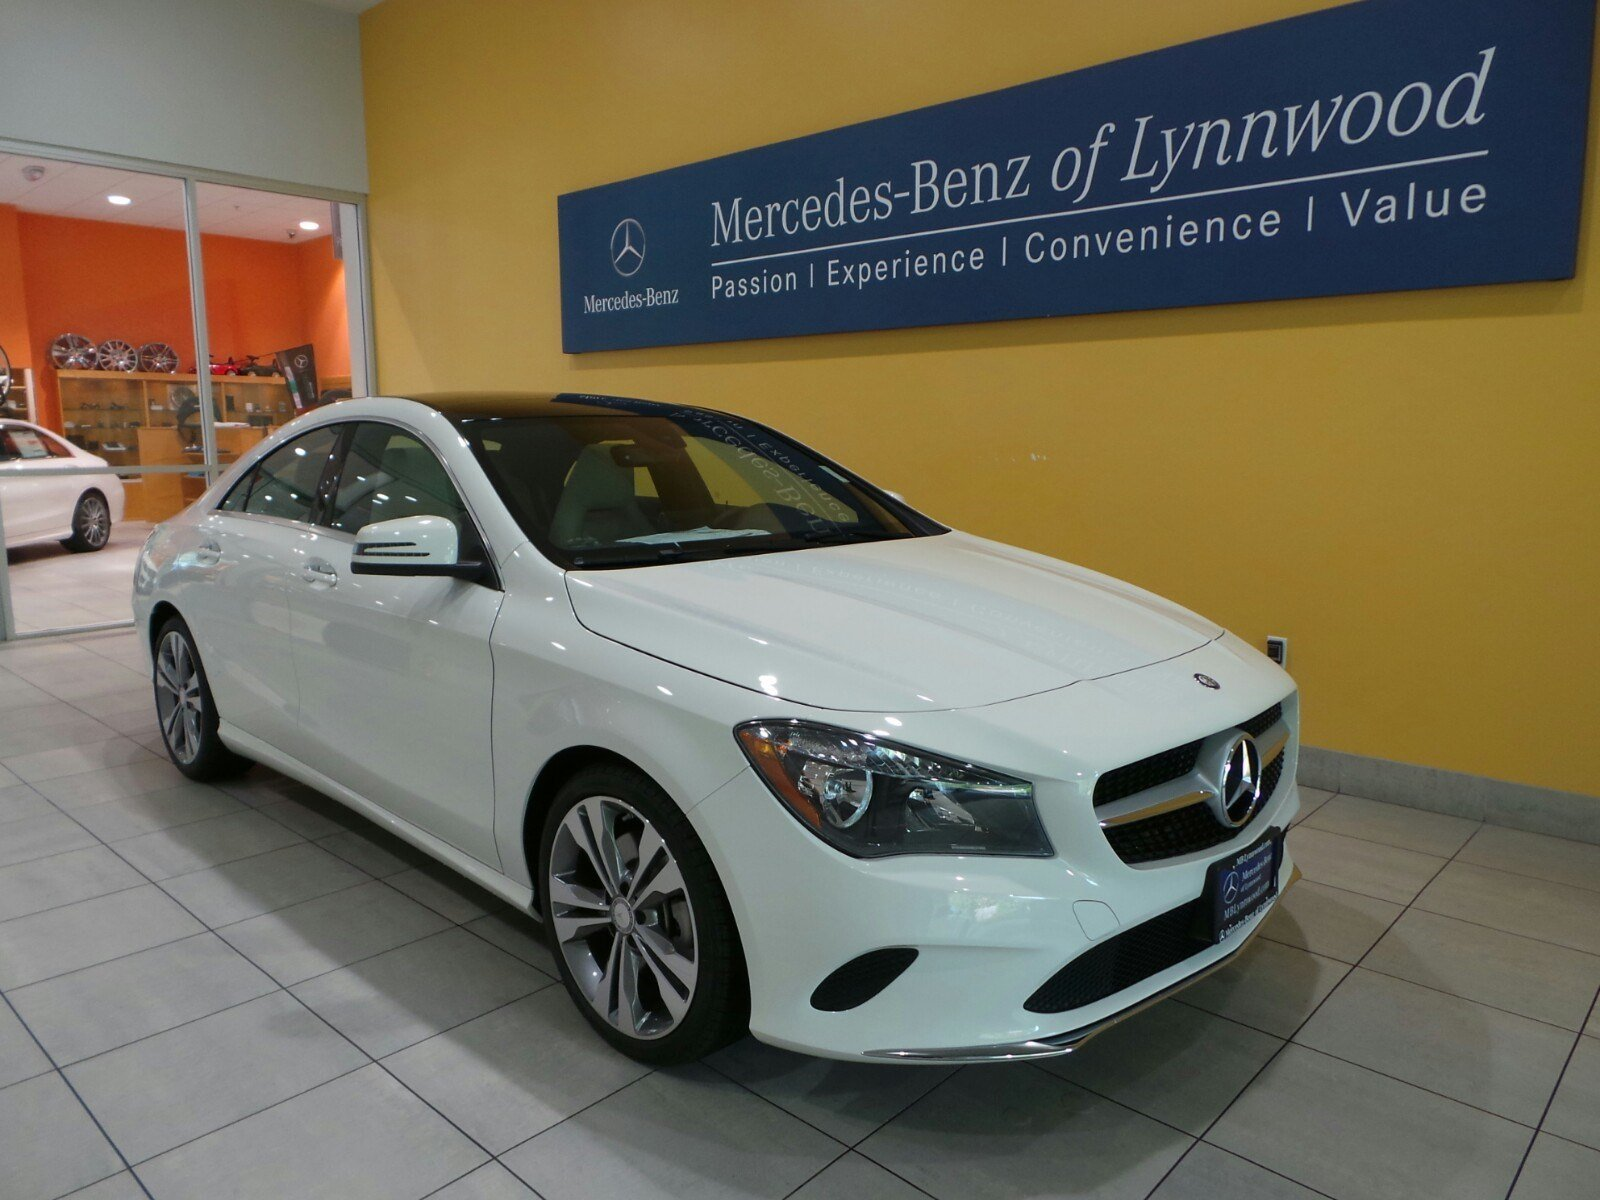 New 2017 mercedes benz cla cla250 coupe coupe in lynnwood for Mercedes benz cla coupe 2017